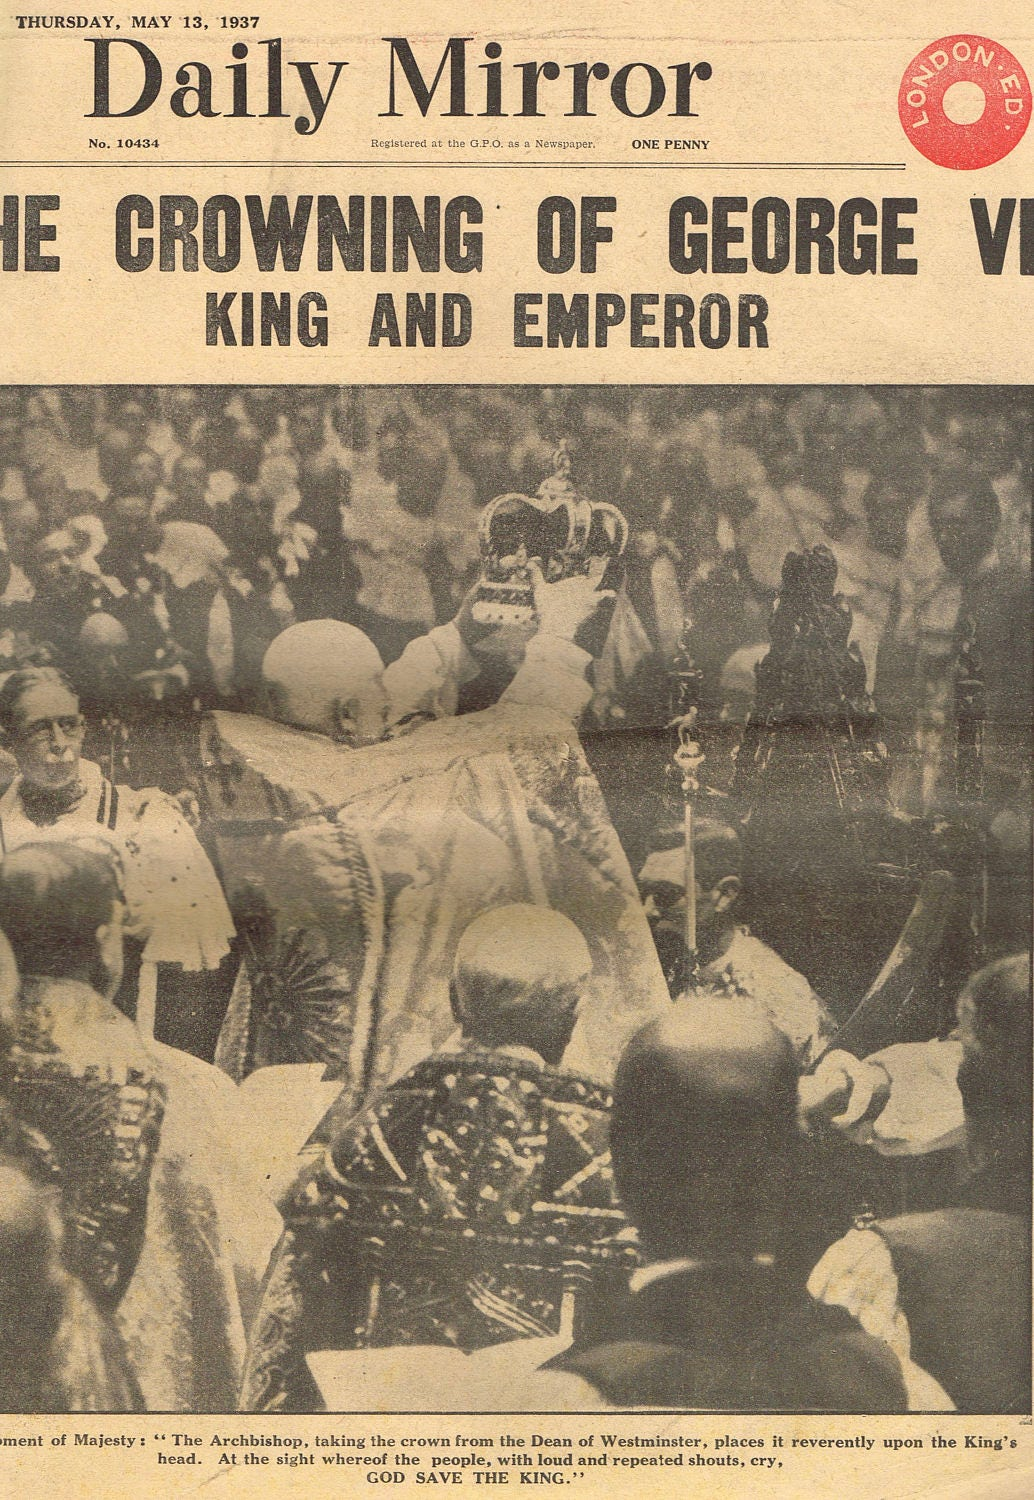 Antique vintage ephemera original 1937 Royal Family King George Coronation Daily Mirror newspaper